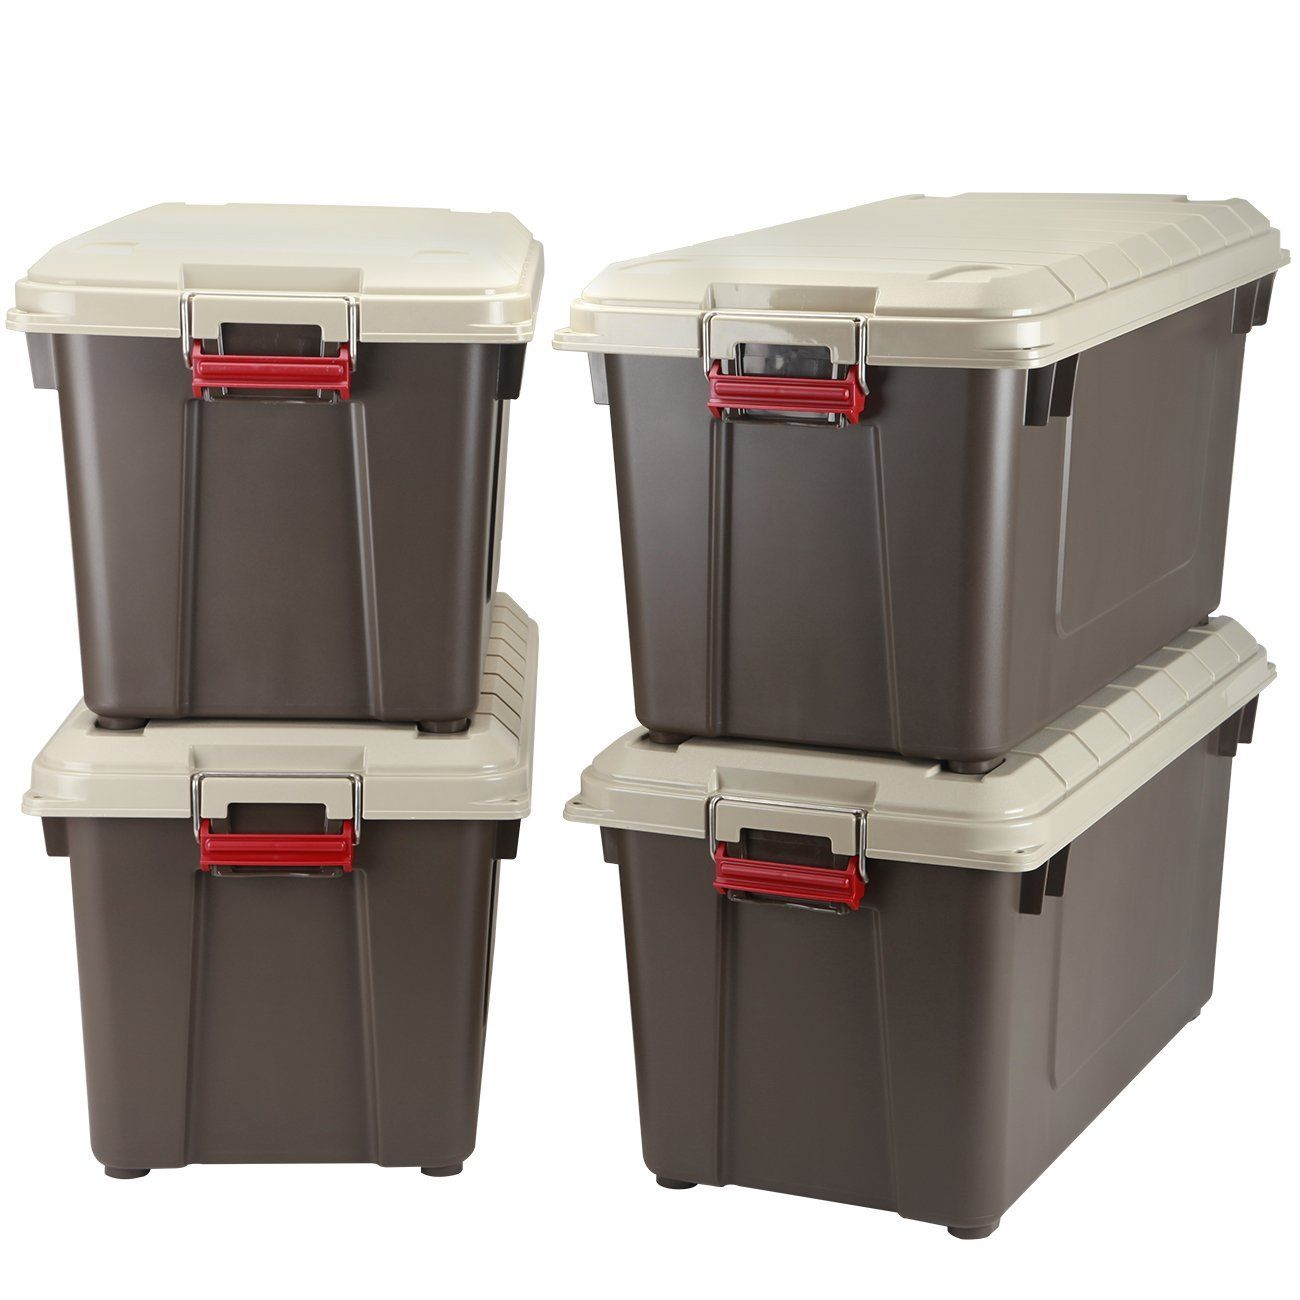 Robot Check Plastic Container Storage Tote Storage Airtight Storage